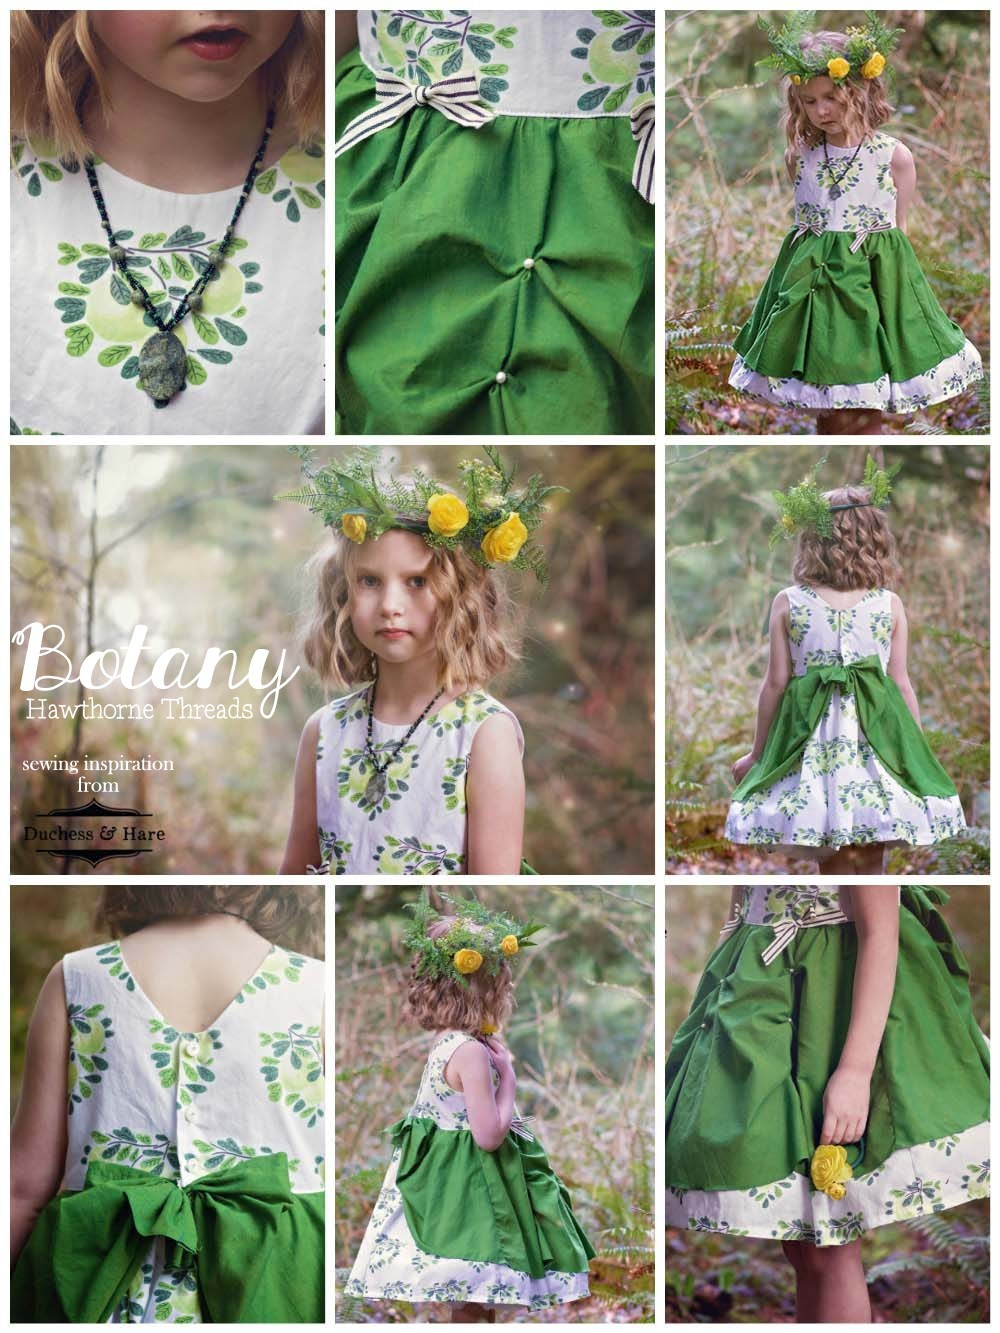 Botany Fabric Project Run and Play